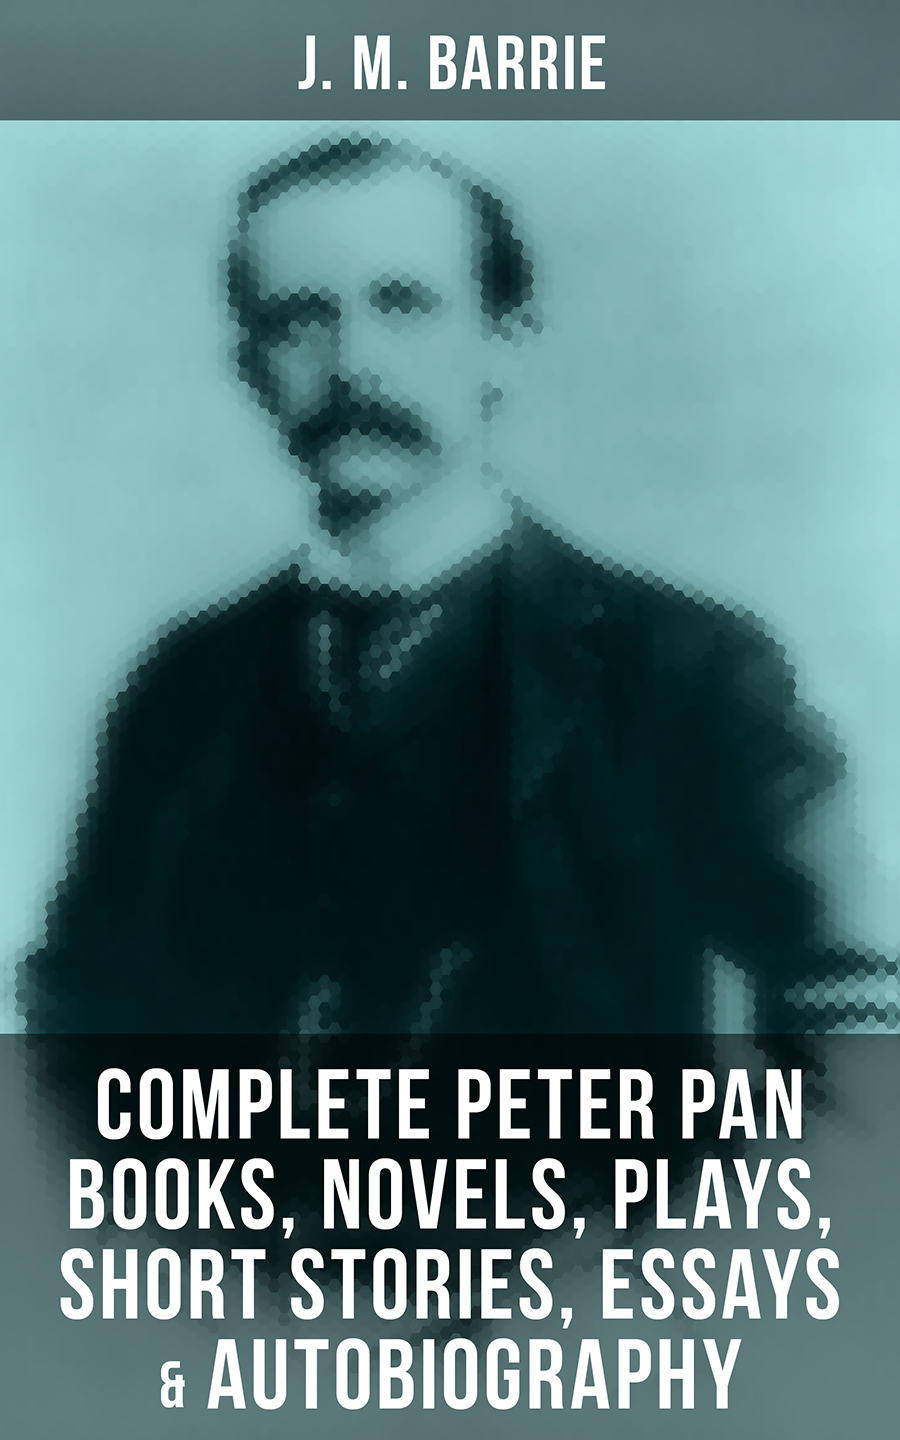 J. M. Barrie J. M. BARRIE: Complete Peter Pan Books, Novels, Plays, Short Stories, Essays & Autobiography barrie водолазки